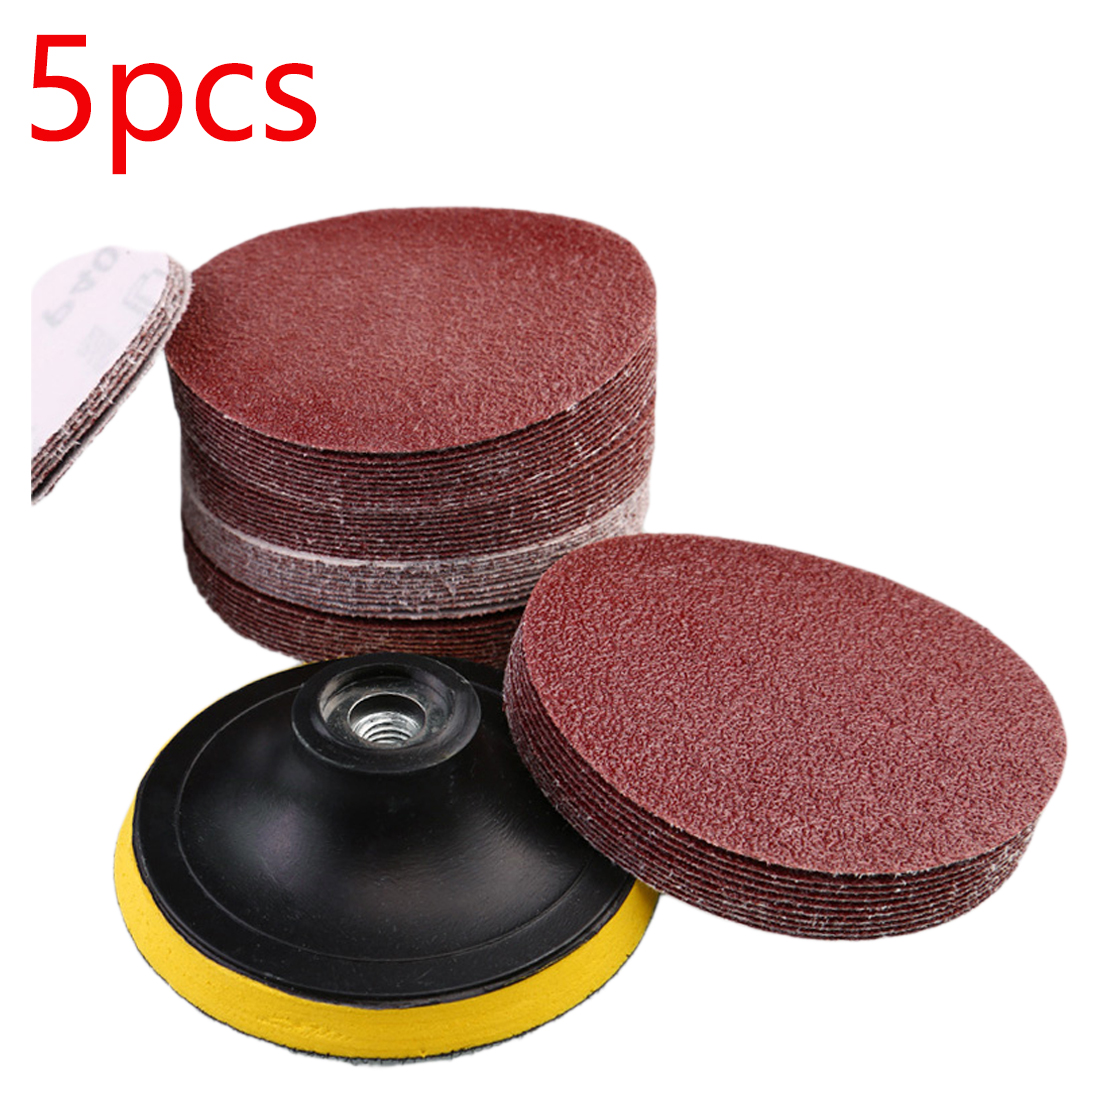 New 5pcs 125mm Red Circular Polishing Discs With Grits 80#-1000# Felt Wheel Polishing Sharpening Sand Paper Tool Accessories